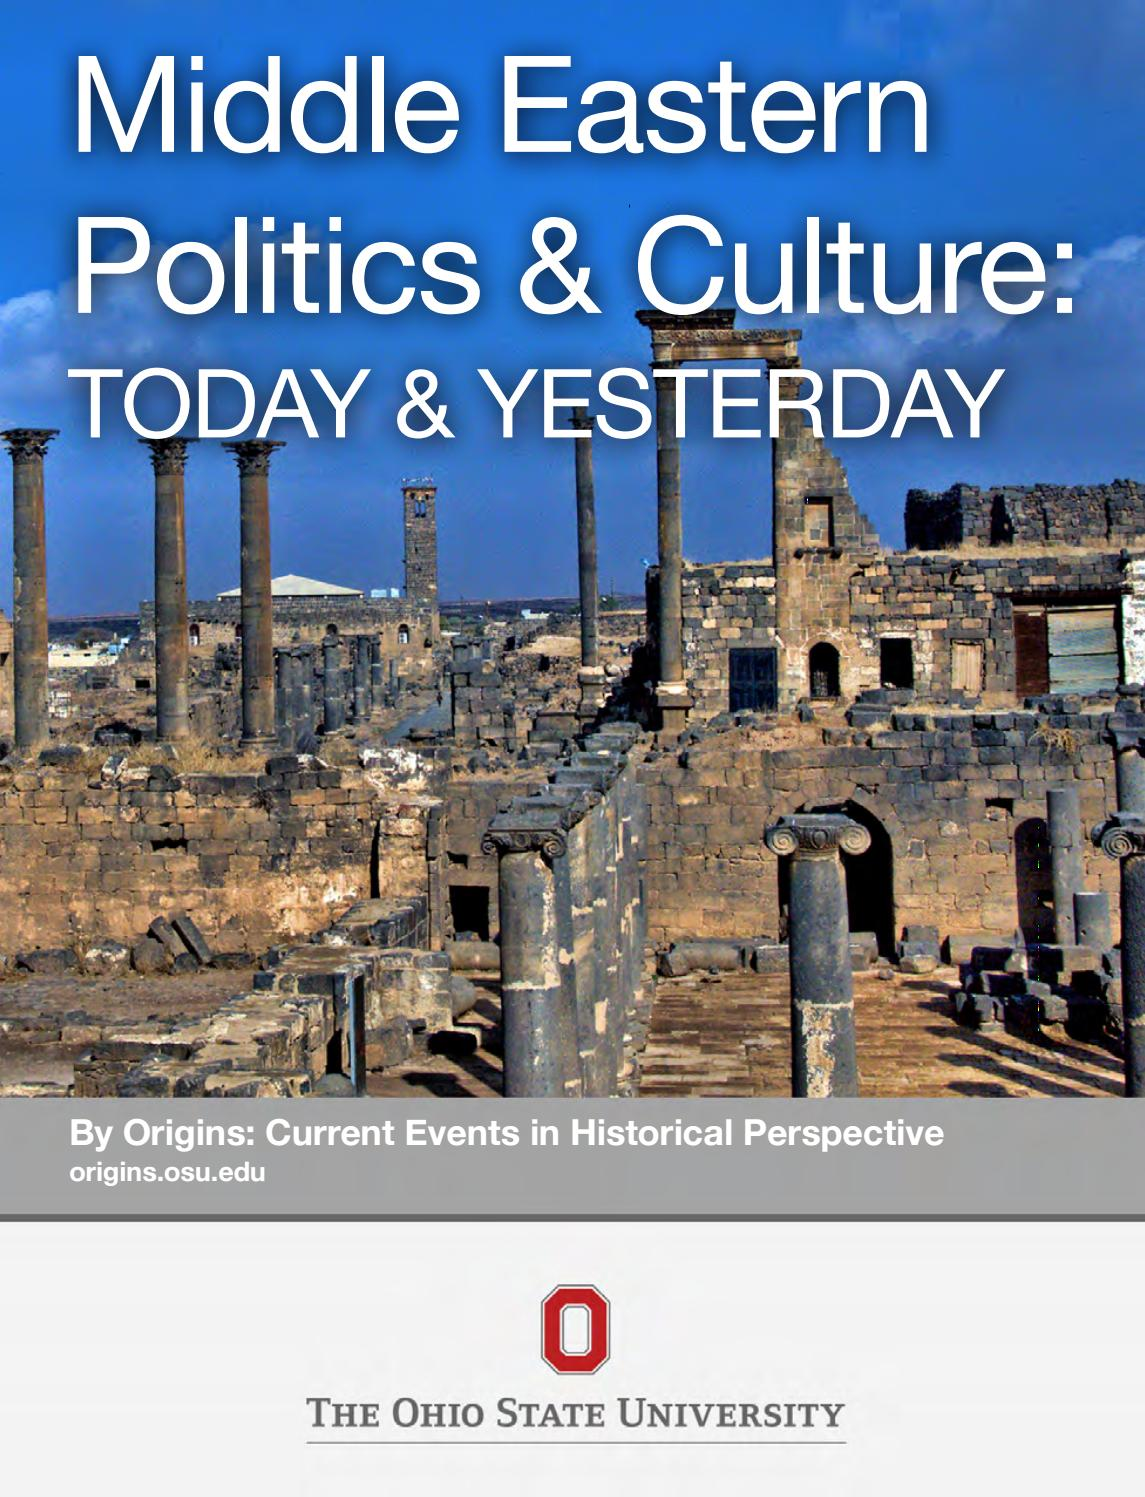 Middle Eastern Politics Culture Today Yesterday By Department 1996 Vs Acclaim Fuse Box Diagram Of History At Ohio State Issuu